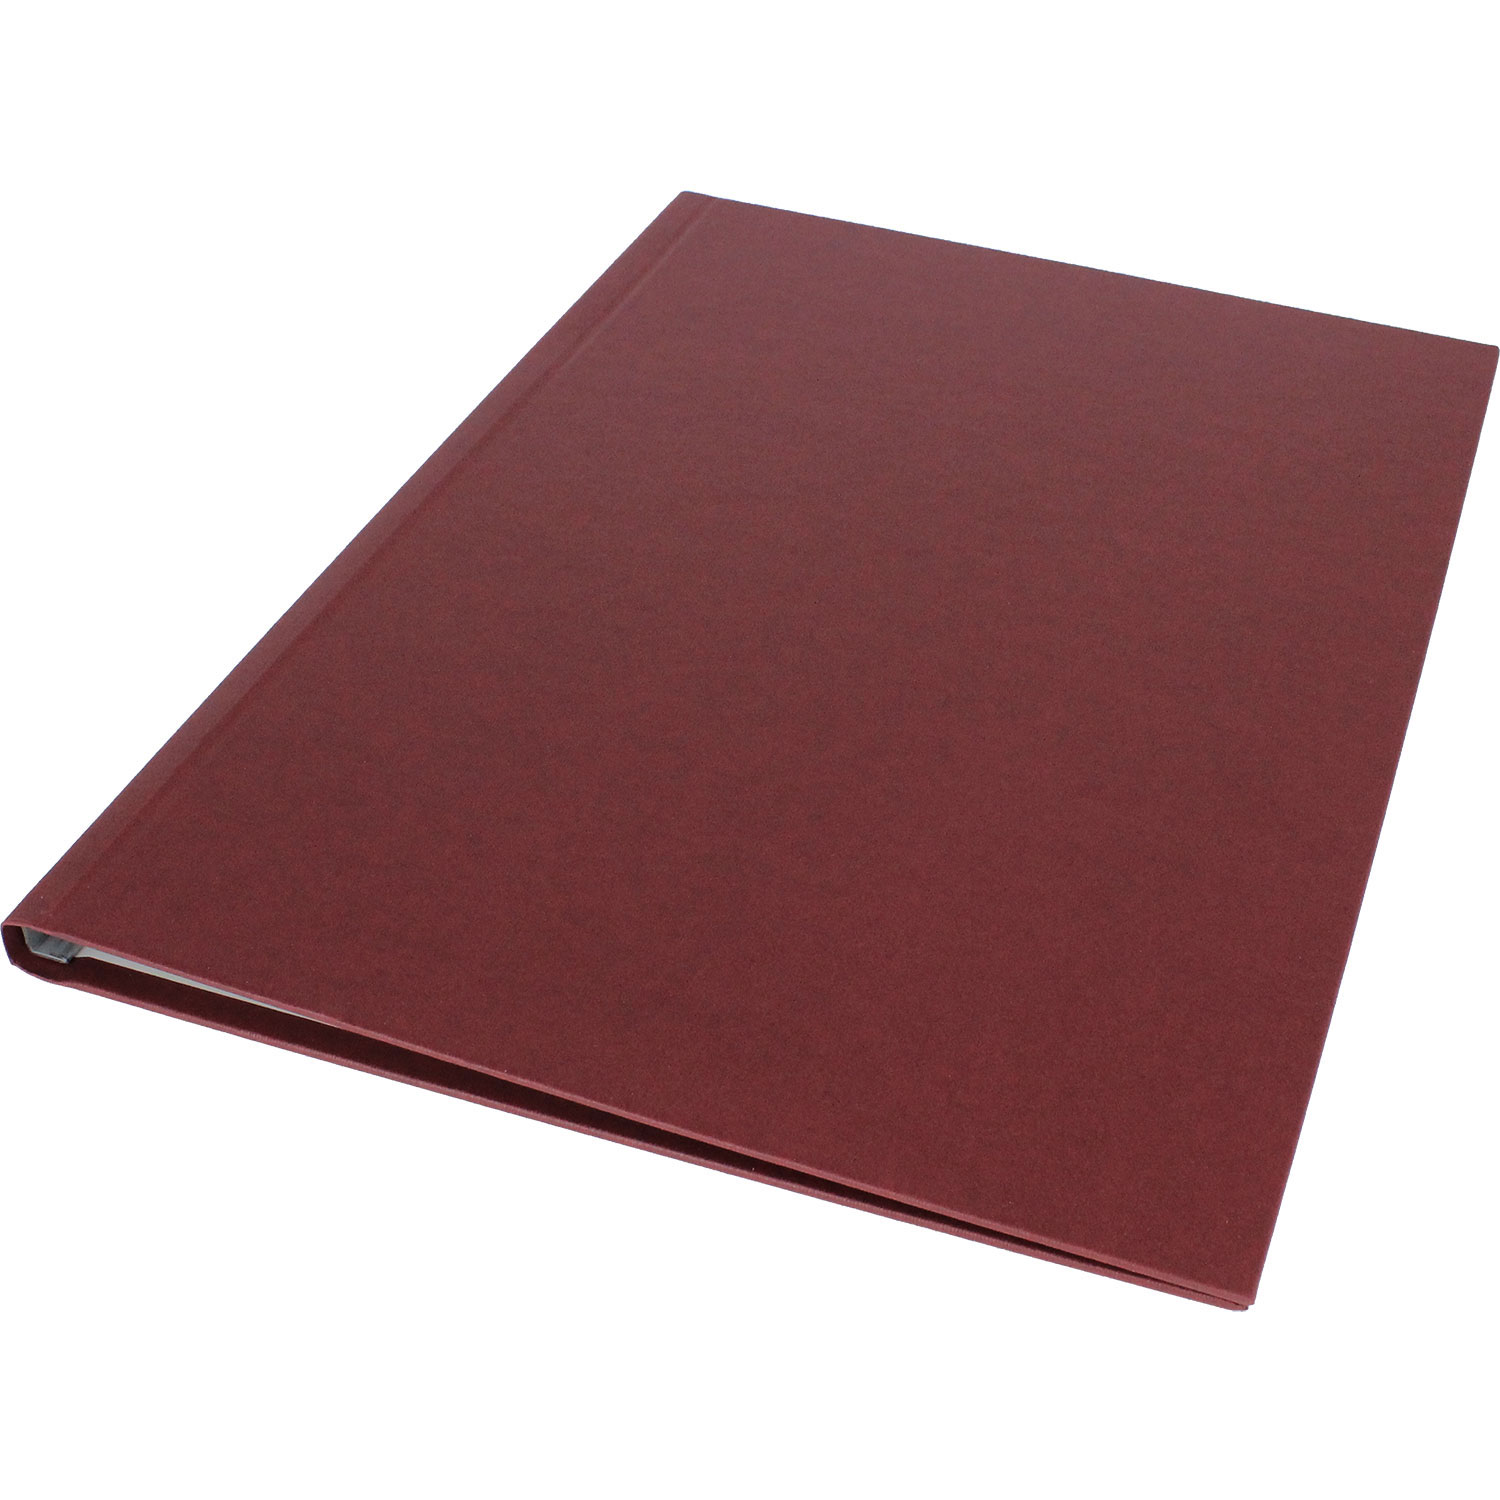 Impressbind A4 Hard Linen Binding Covers - Burgundy-Red